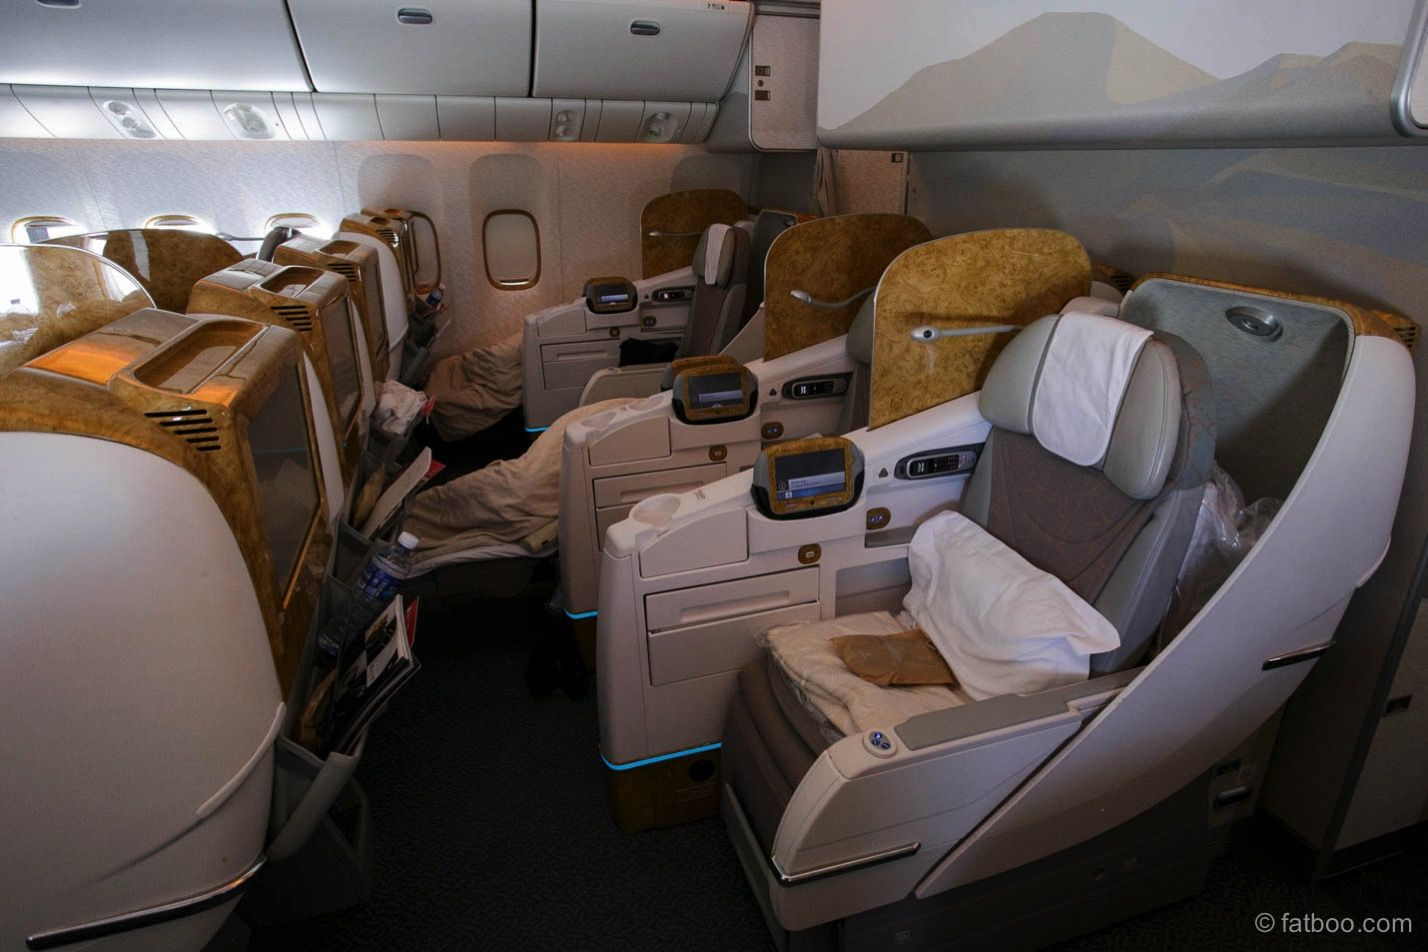 Emirates 777-300ER Business Class | Airlines I have flown